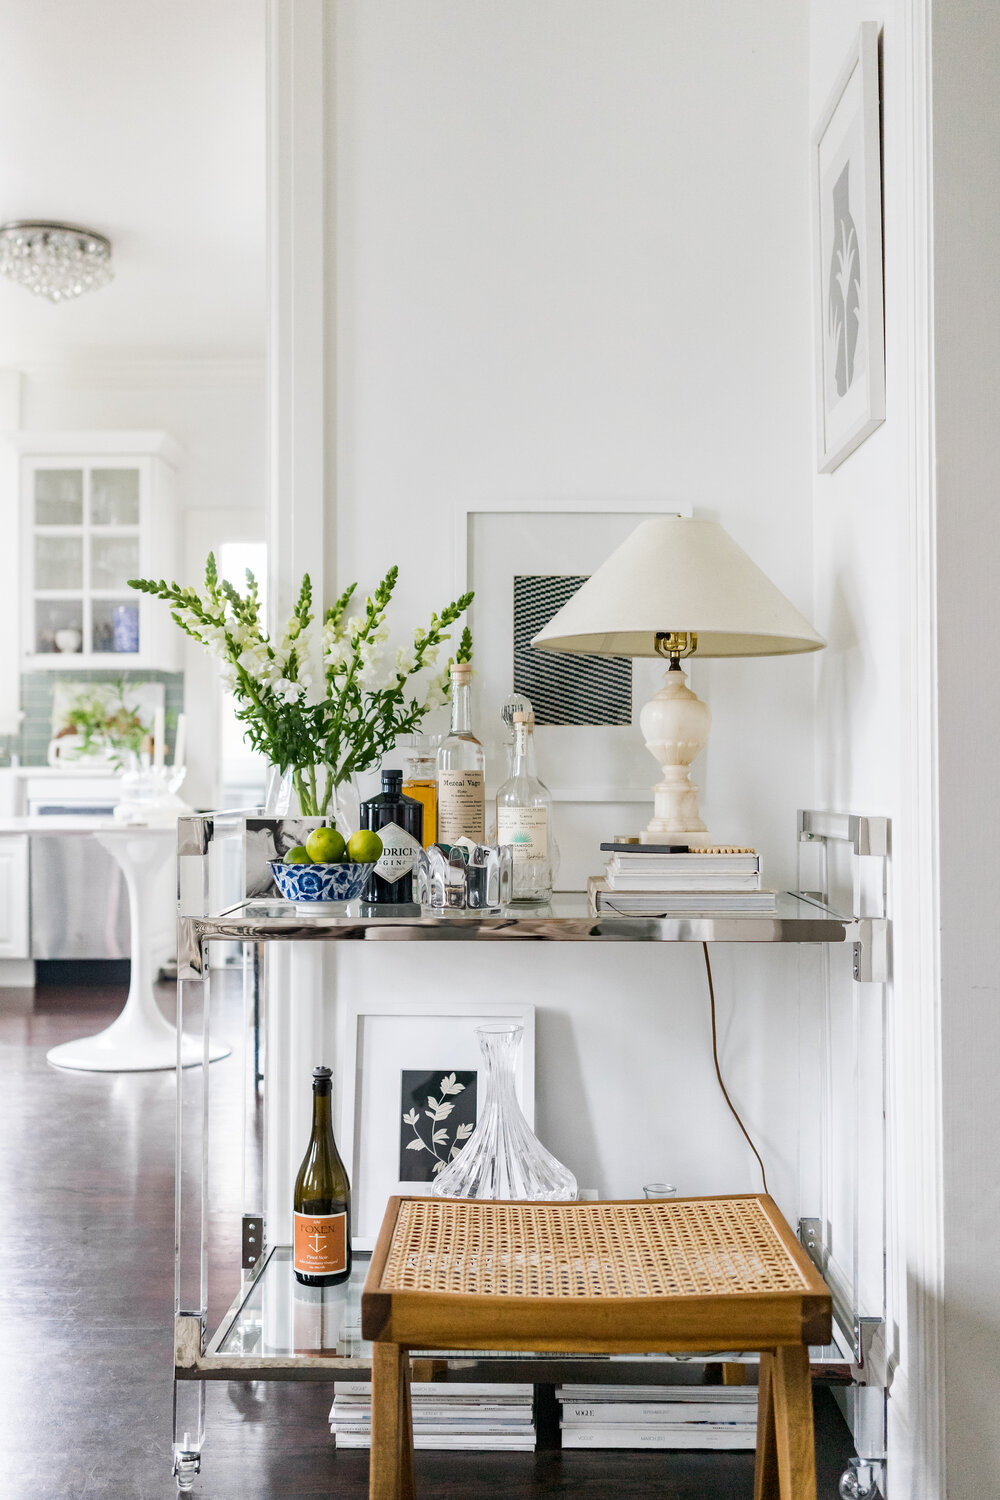 AT HOME WITH LIFESTYLE BLOGGER ASHLEY KANE — Rue Rodier #interiors #parisapartments #parisianinteriors #parisinteriors #interiordesign #hometour